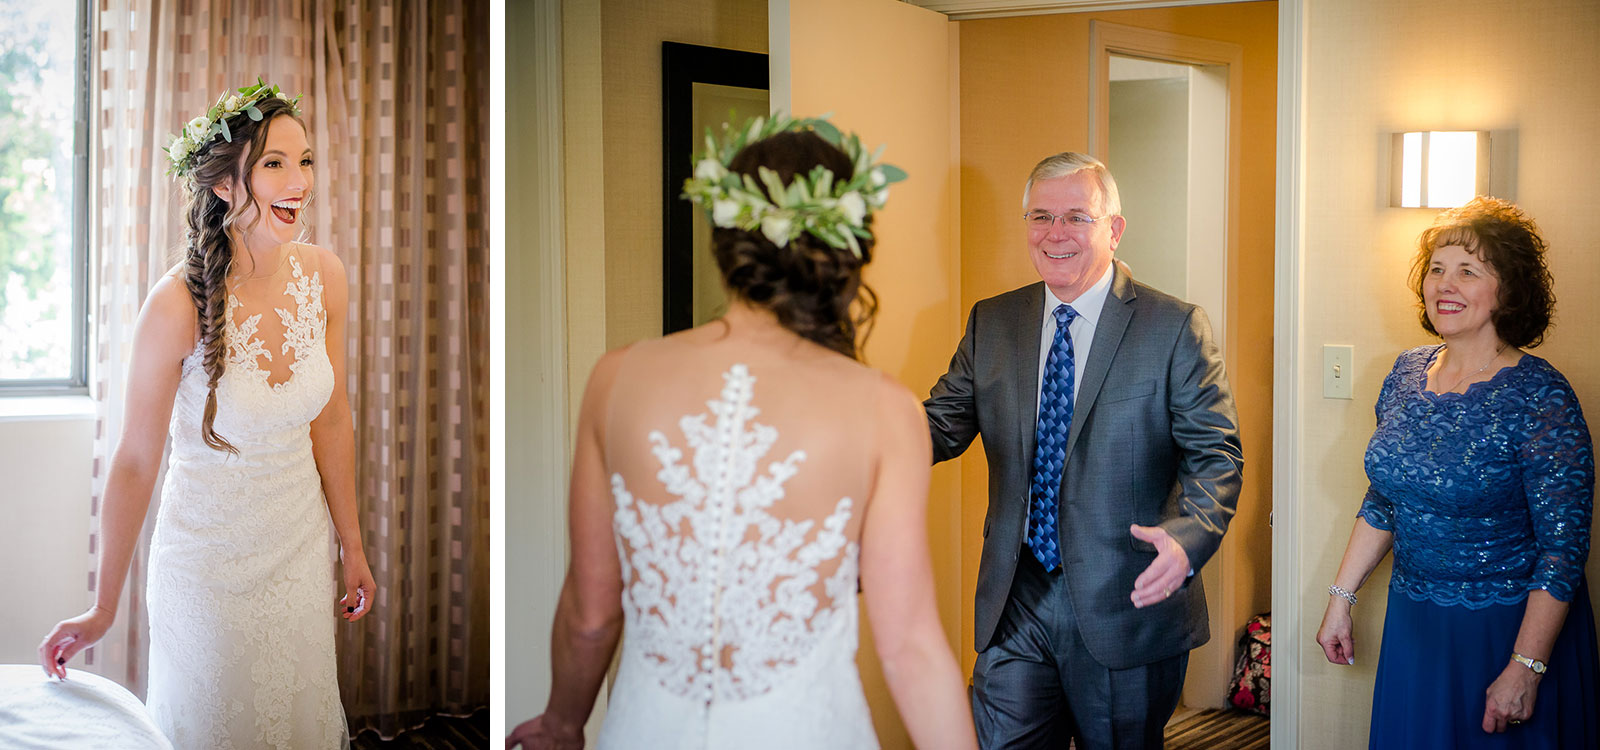 Eric_and_Christy_Photography_Blog_2018_Wed_moments-42-43